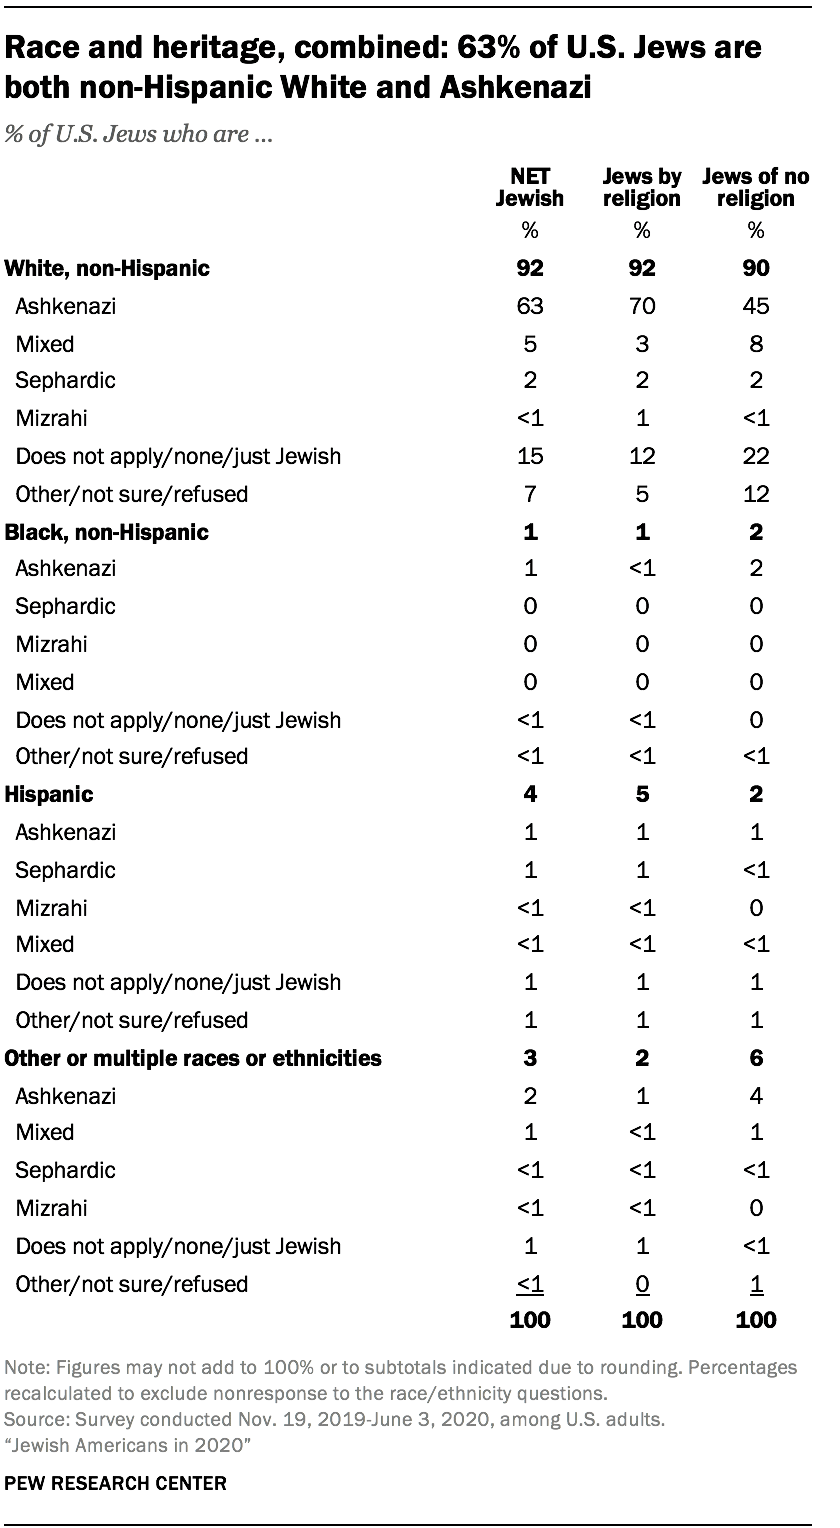 Race and heritage, combined: 63% of U.S. Jews are both non-Hispanic White and Ashkenazi